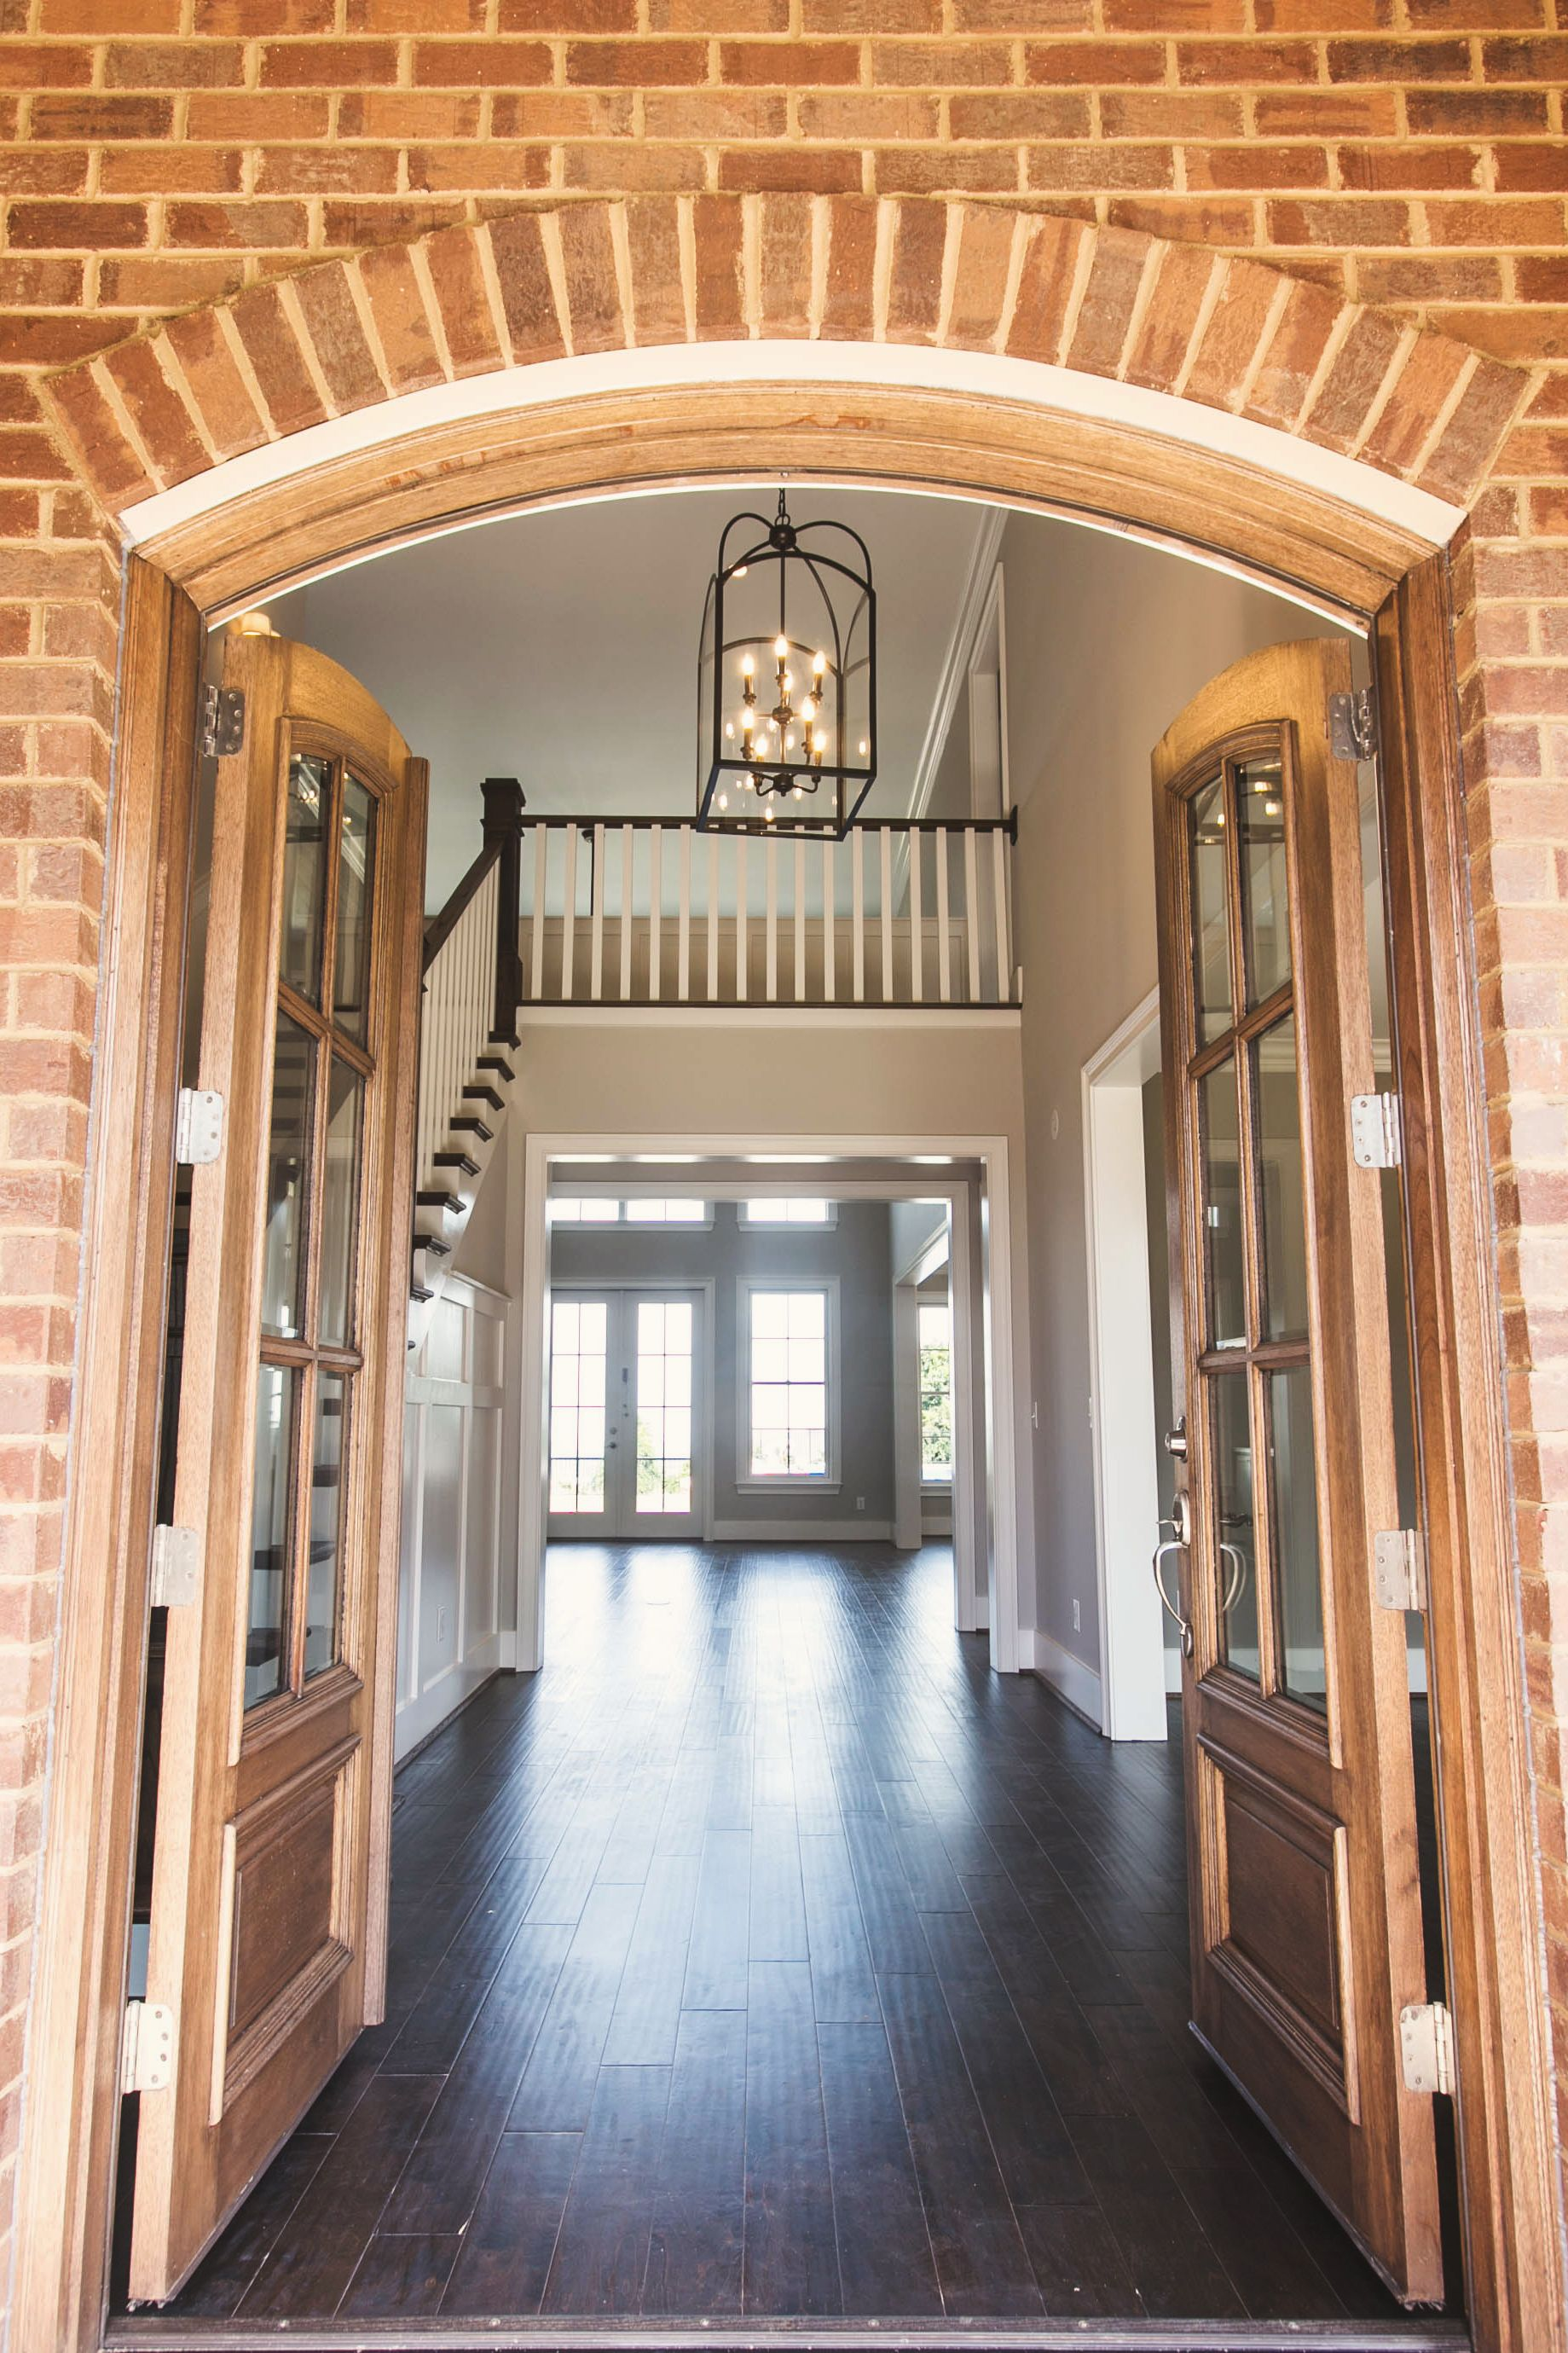 Beautiful front entryway of a custom home in birmingham al from j wright building company customhomebuilder southernlivingcustombuilder southernliving